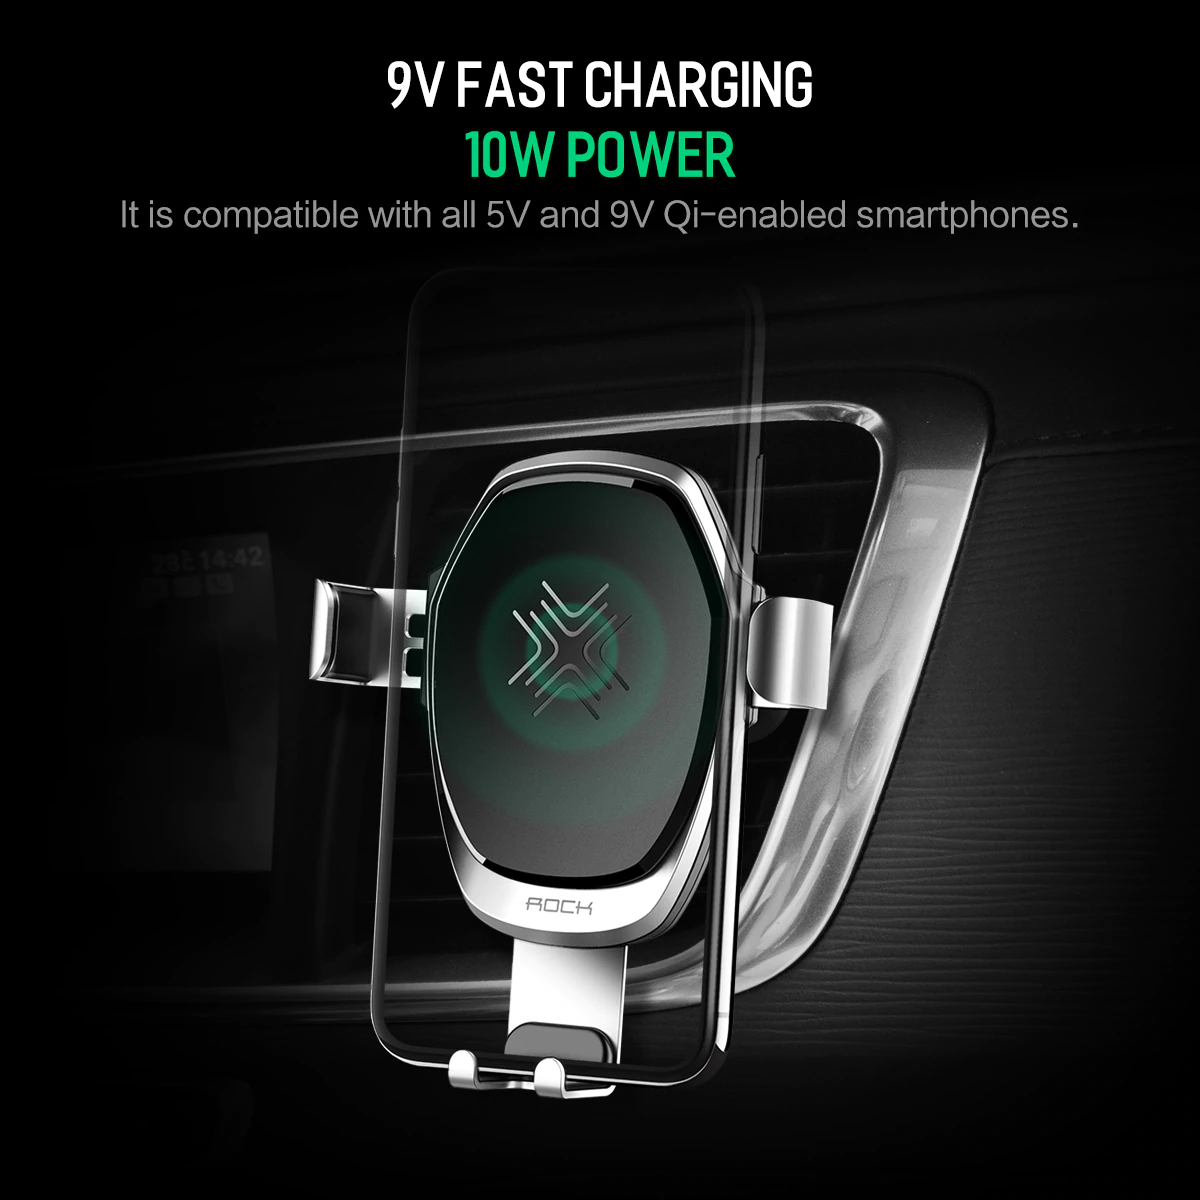 Rock Car Mount Wireless Charger 1